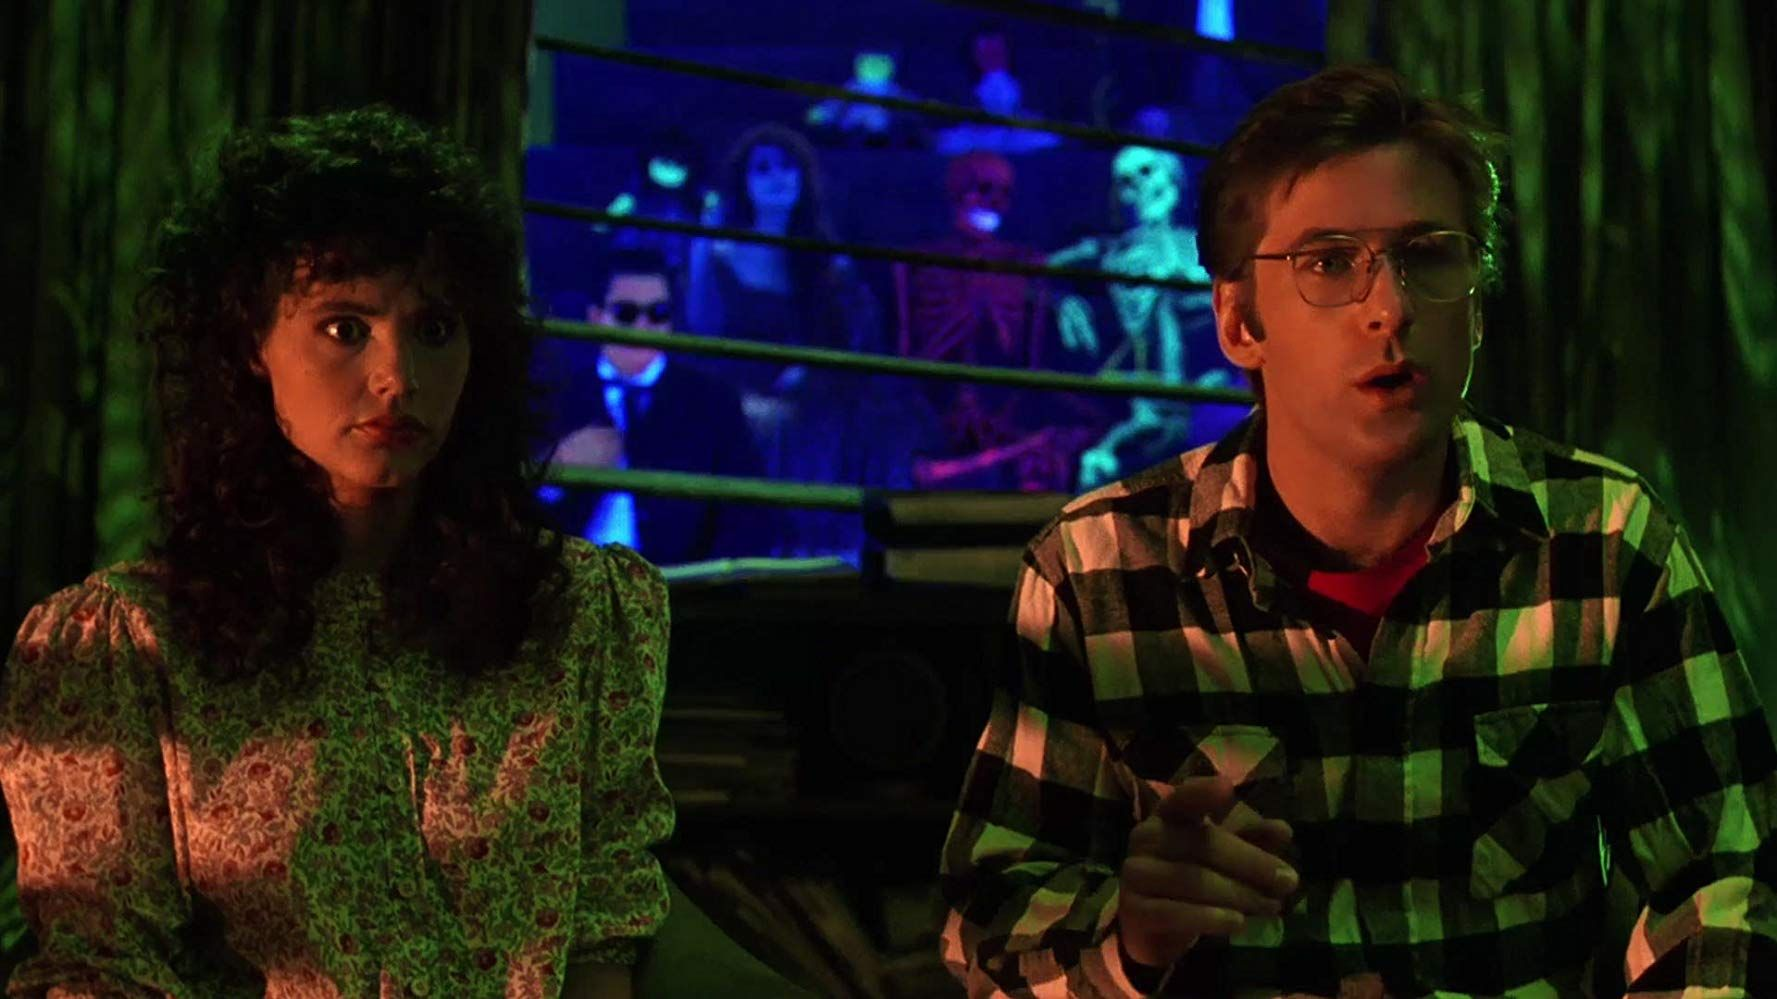 Beetlejuice Is a Horror-Fantasy-Comedy Hybrid Above All Categorization